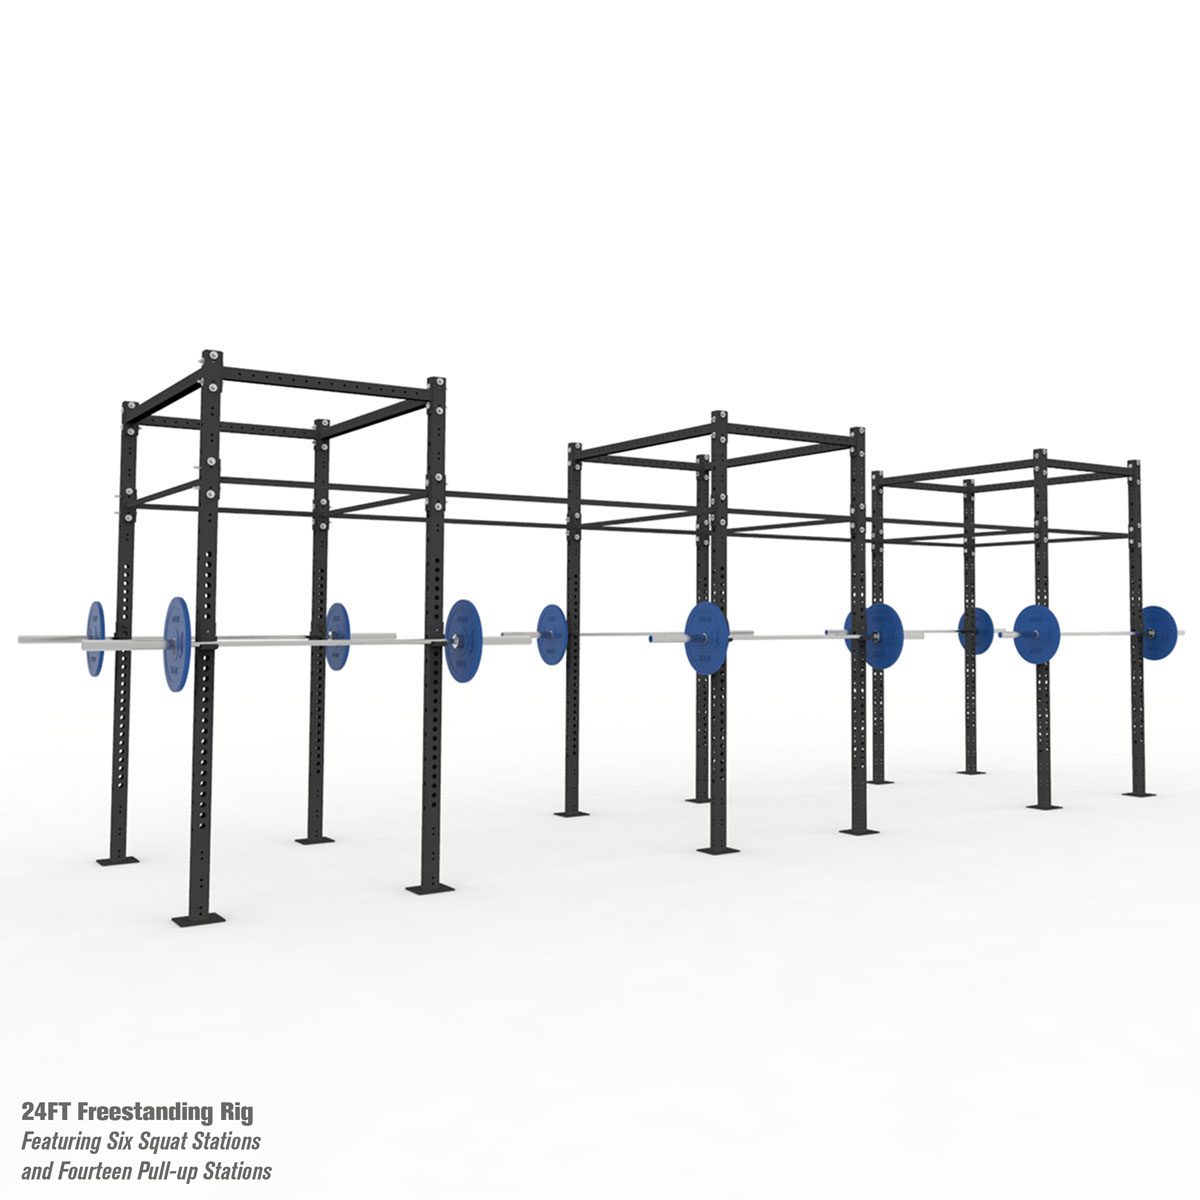 Competition Freestanding Rigs